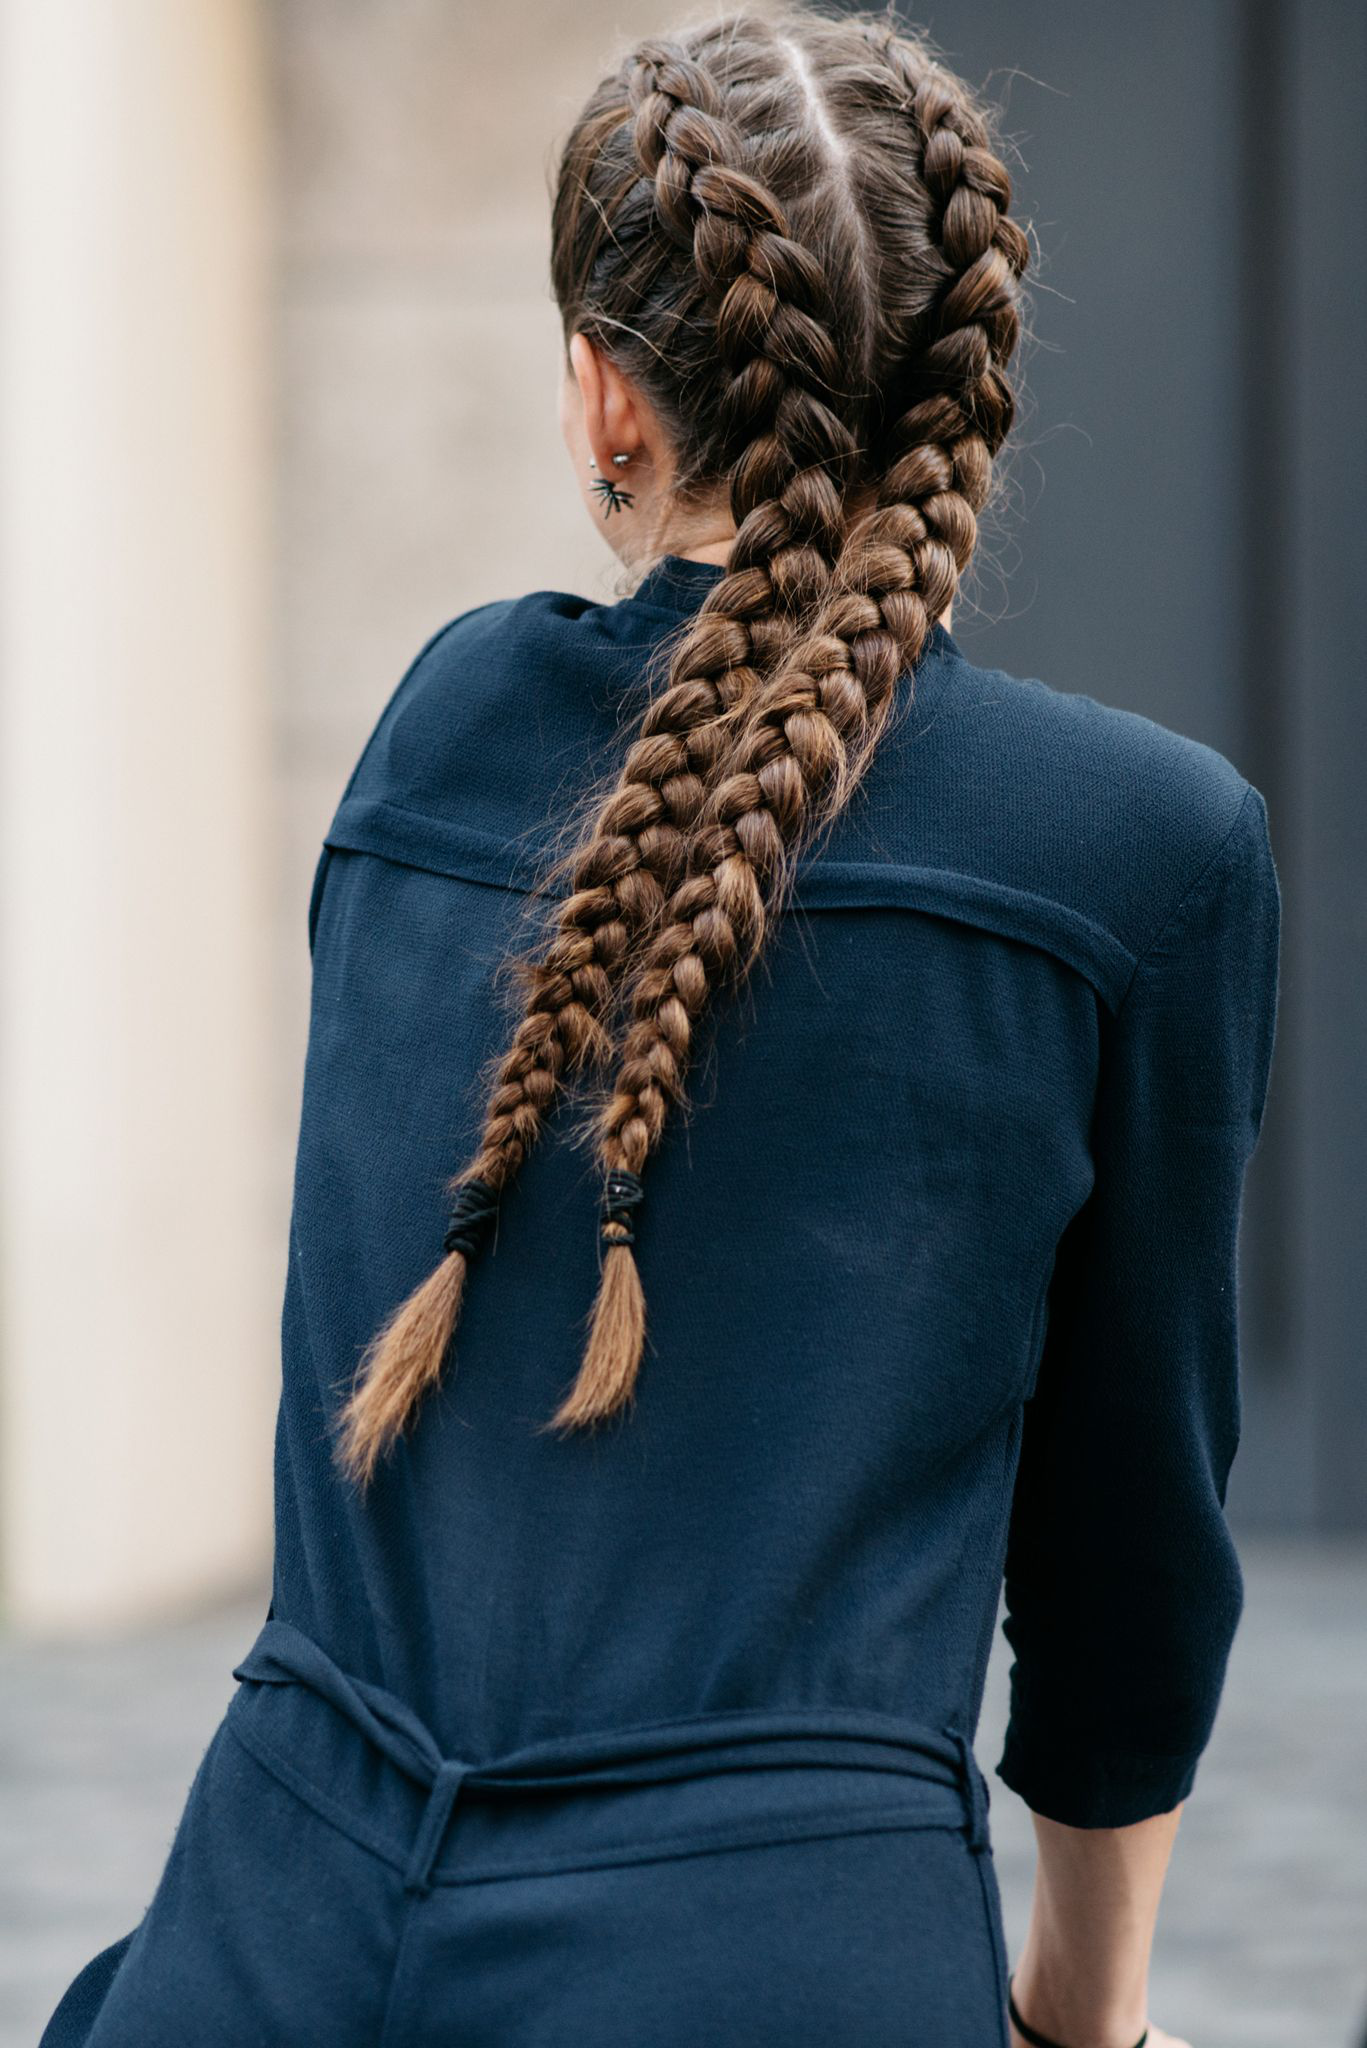 42+ Double french braid tutorial trends